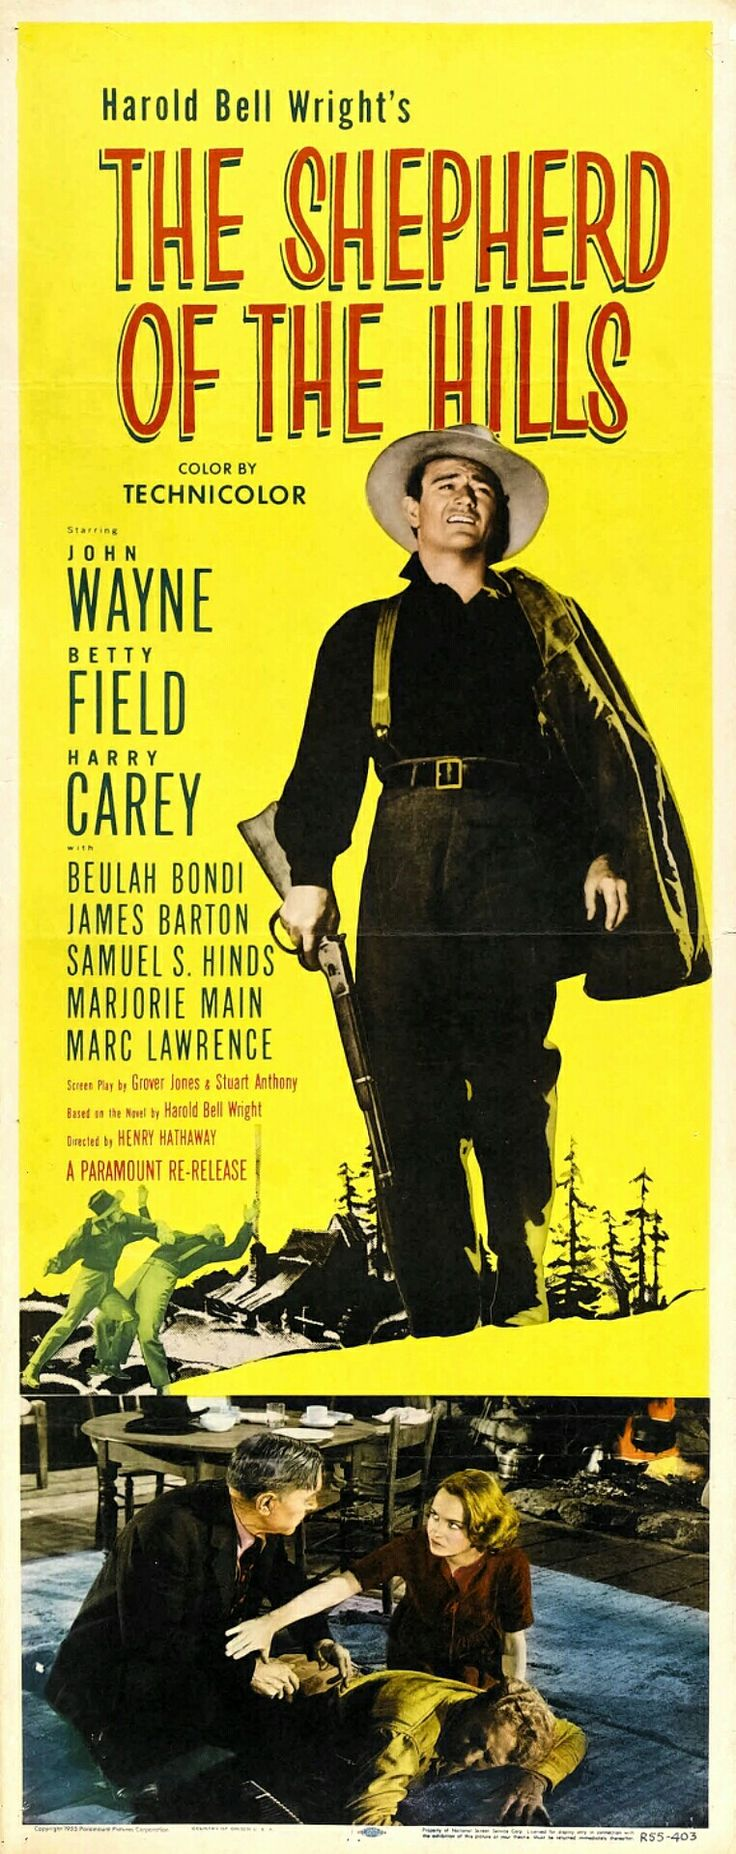 The Shepherd of the Hills is a 1941 American drama film starring John Wayne, Betty Field and Harry Carey. The supporting cast includes Beulah Bondi, Ward Bond, Marjorie Main and John Qualen. The picture was Wayne's first film in Technicolor and was based on the novel of the same name by Harold Bell Wright. The director was Henry Hathaway, who directed several other Wayne films including True Grit almost three decades later.